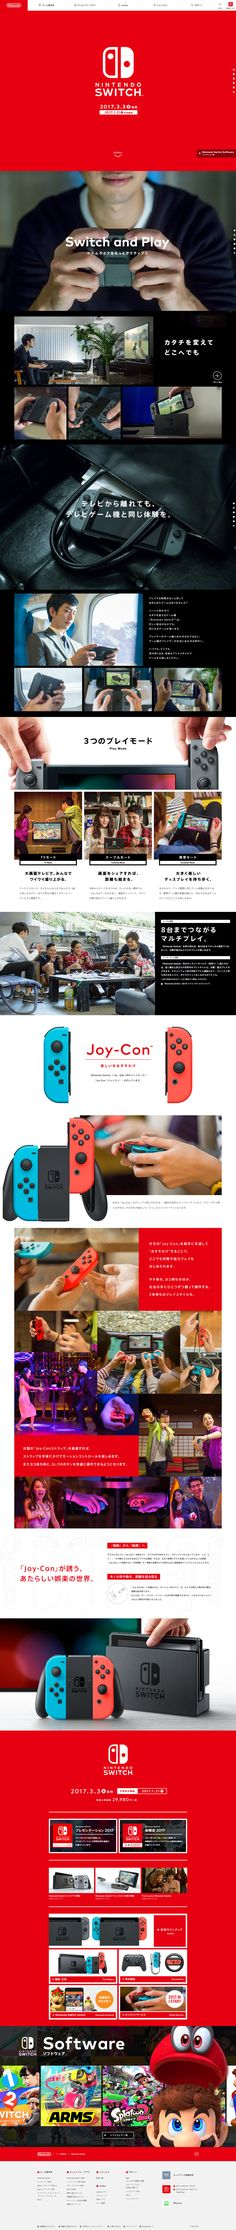 Nintendo Switch https://www.nintendo.co.jp/hardware/switch/index.html